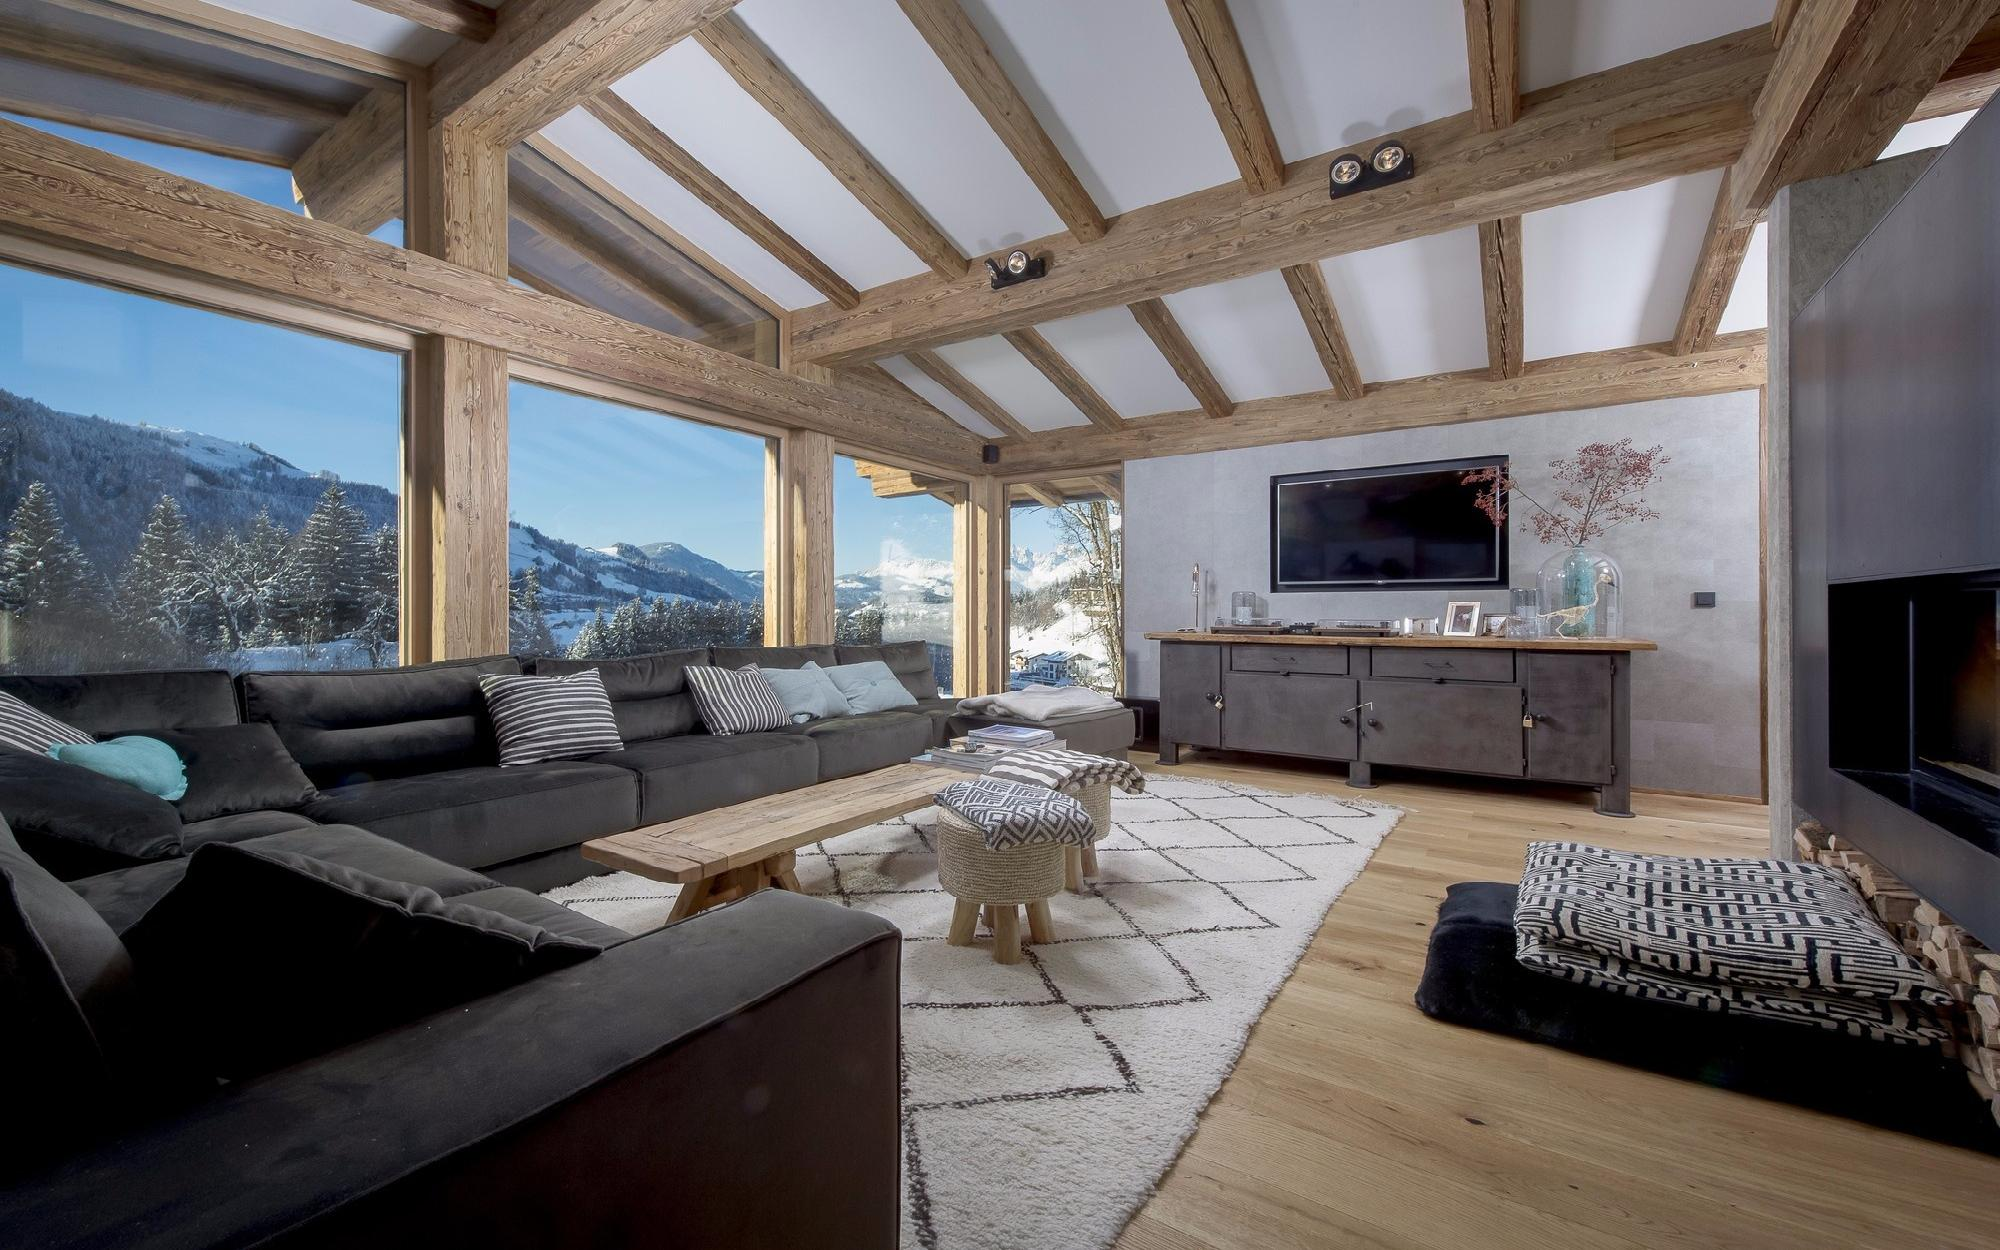 Newly built chalet with guest house in Kitzbühel for Sale - Tirol - Austria